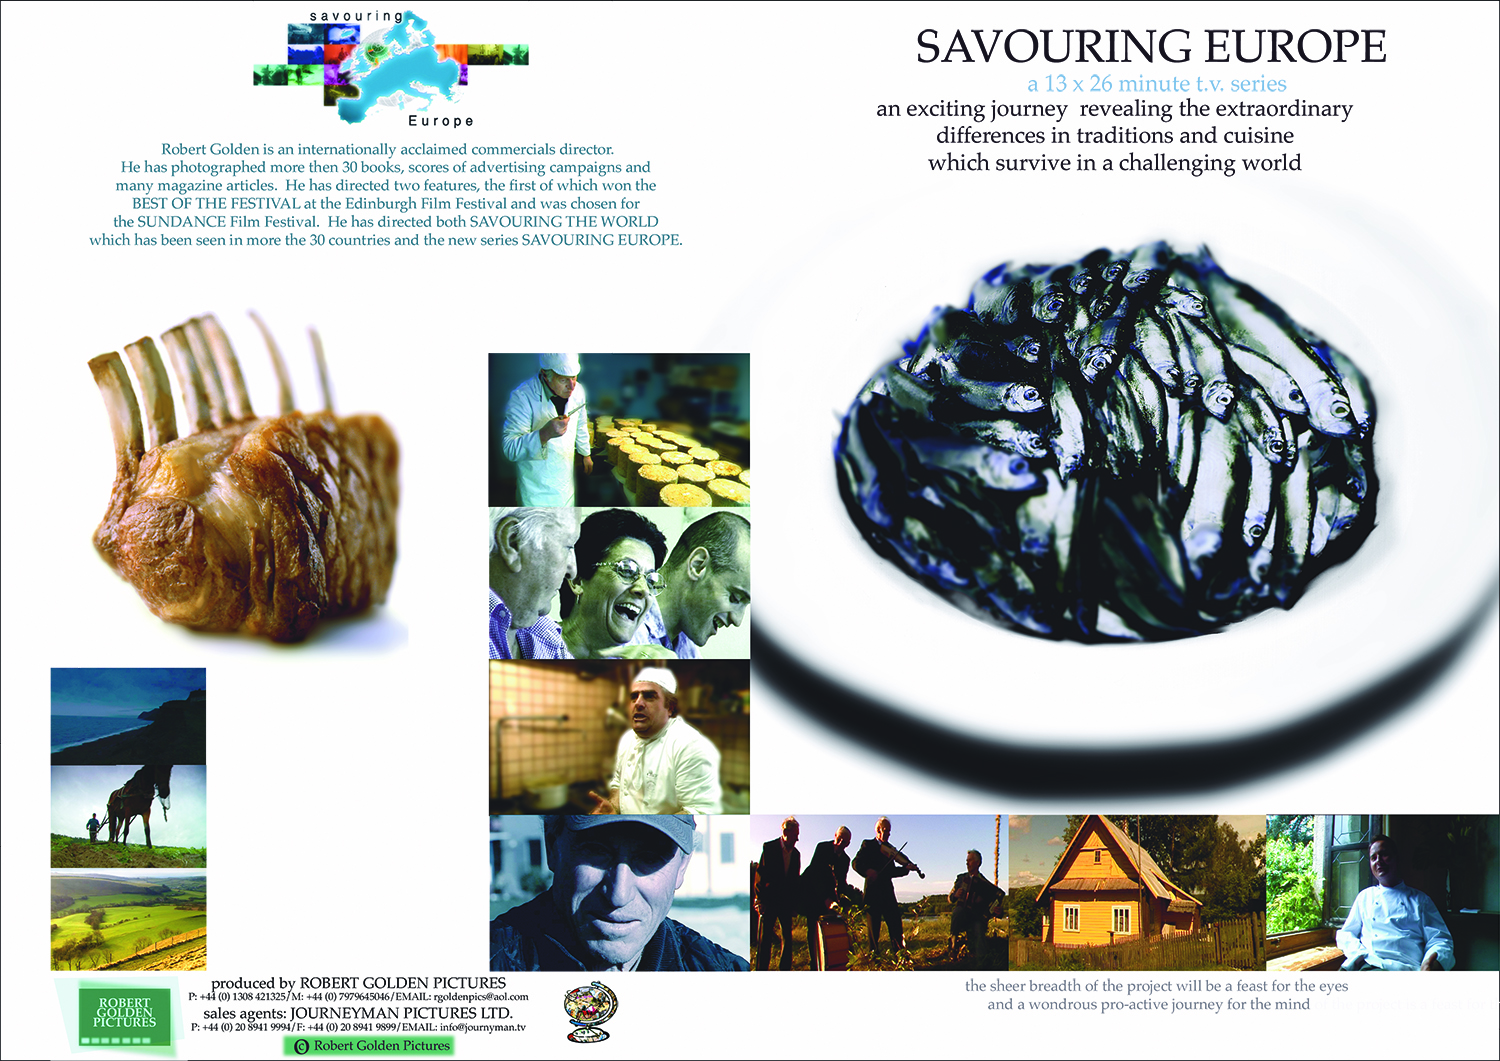 - SAVOURING EUROPE's trailer can be seen here. The films can be see here. Waring: the quality they have been uploaded with is very poor.